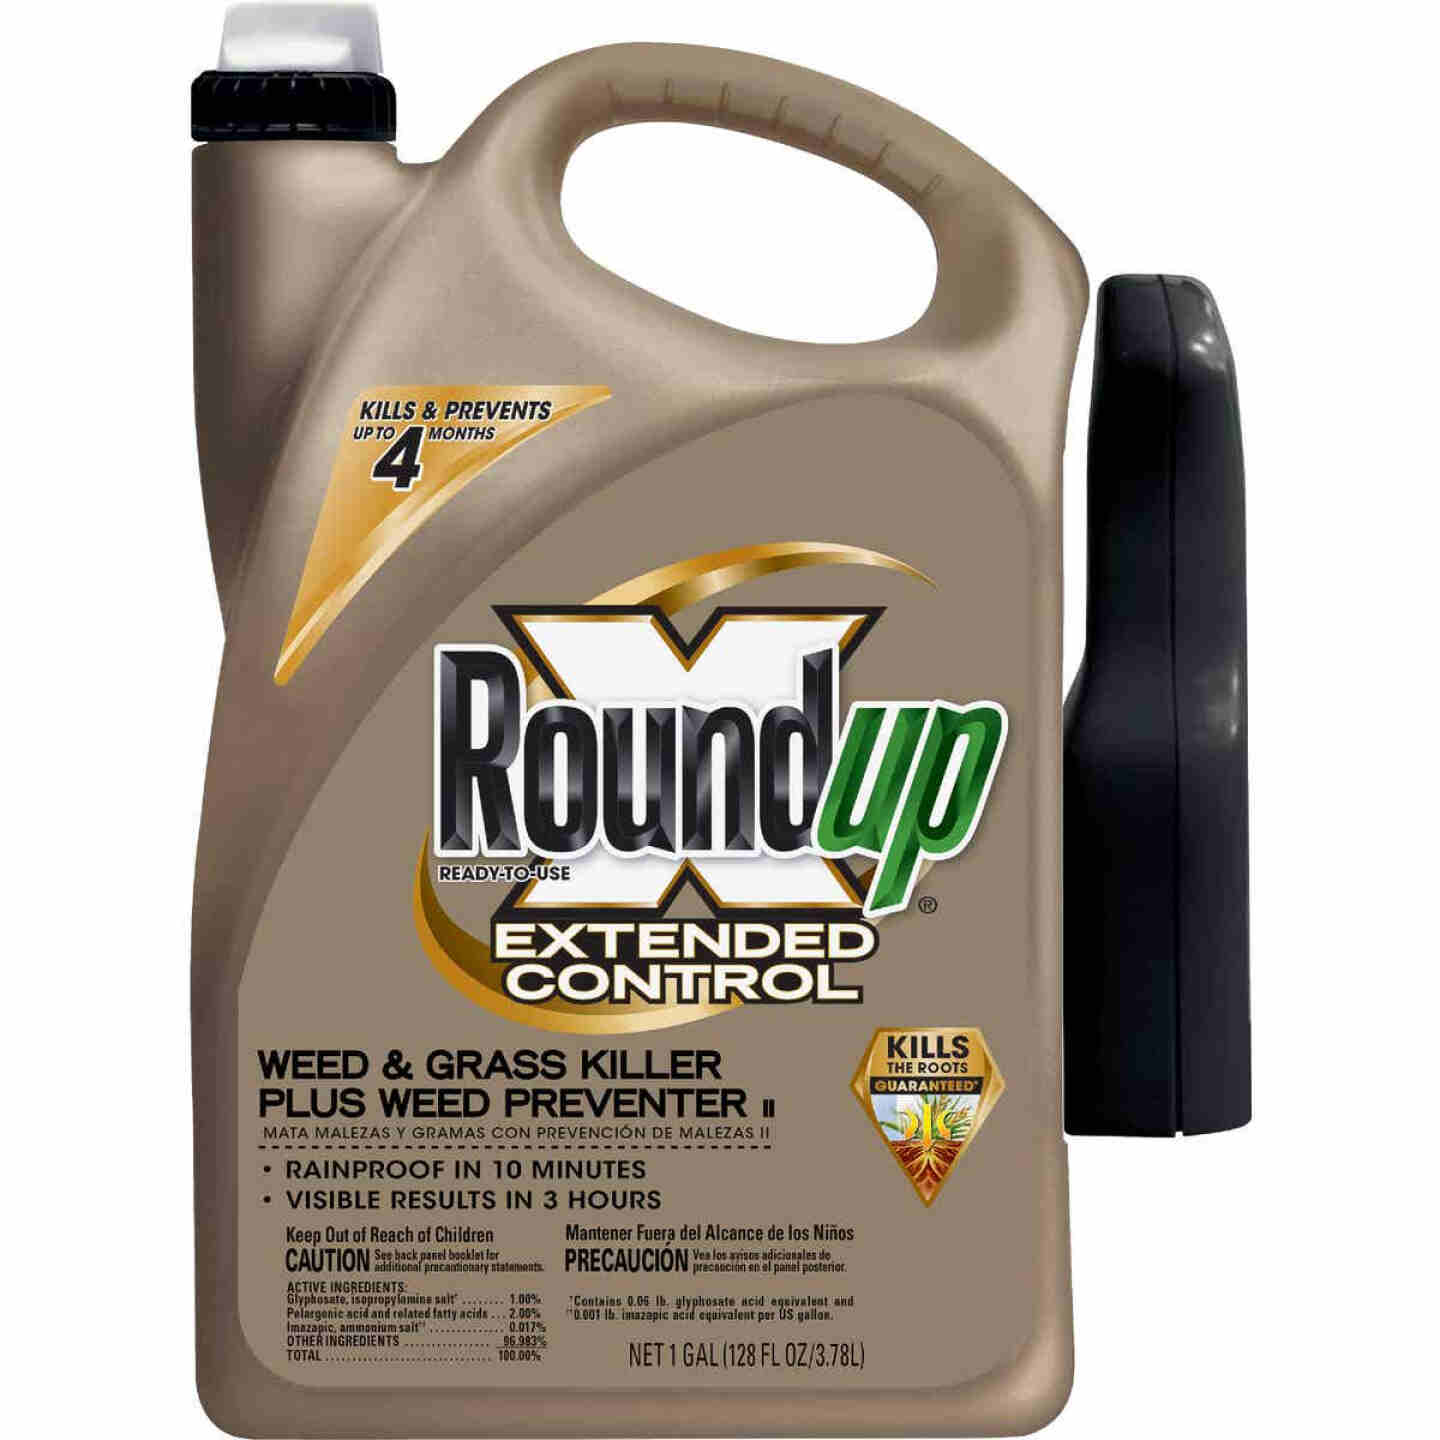 Roundup Extended Control 1 Gal. Ready To Use Wand Sprayer Weed & Grass Killer Plus Weed Preventer II Image 1